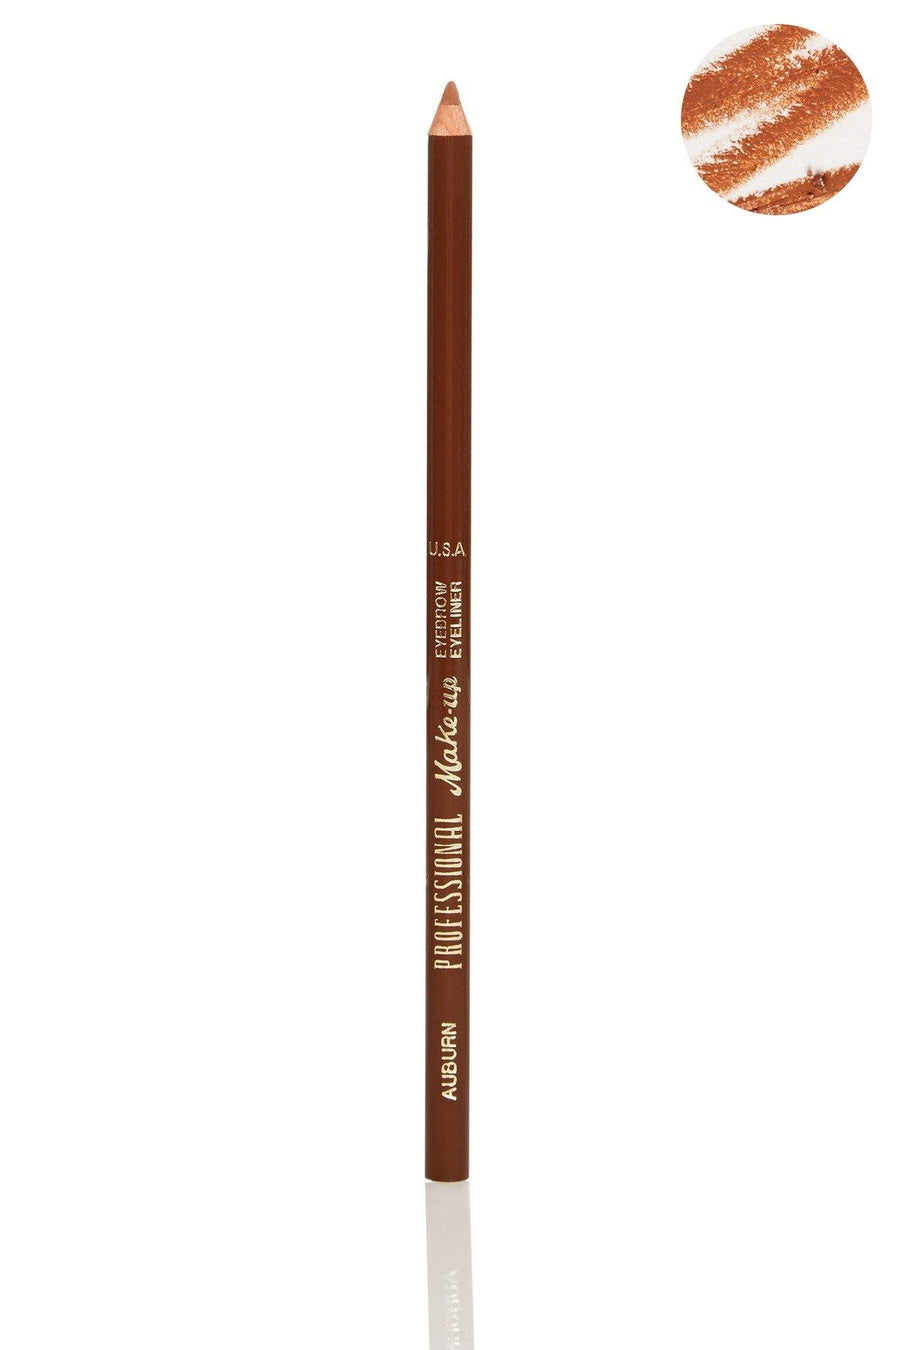 Auburn Eyebrow Eyeliner Pencil - Blend Mineral Cosmetics